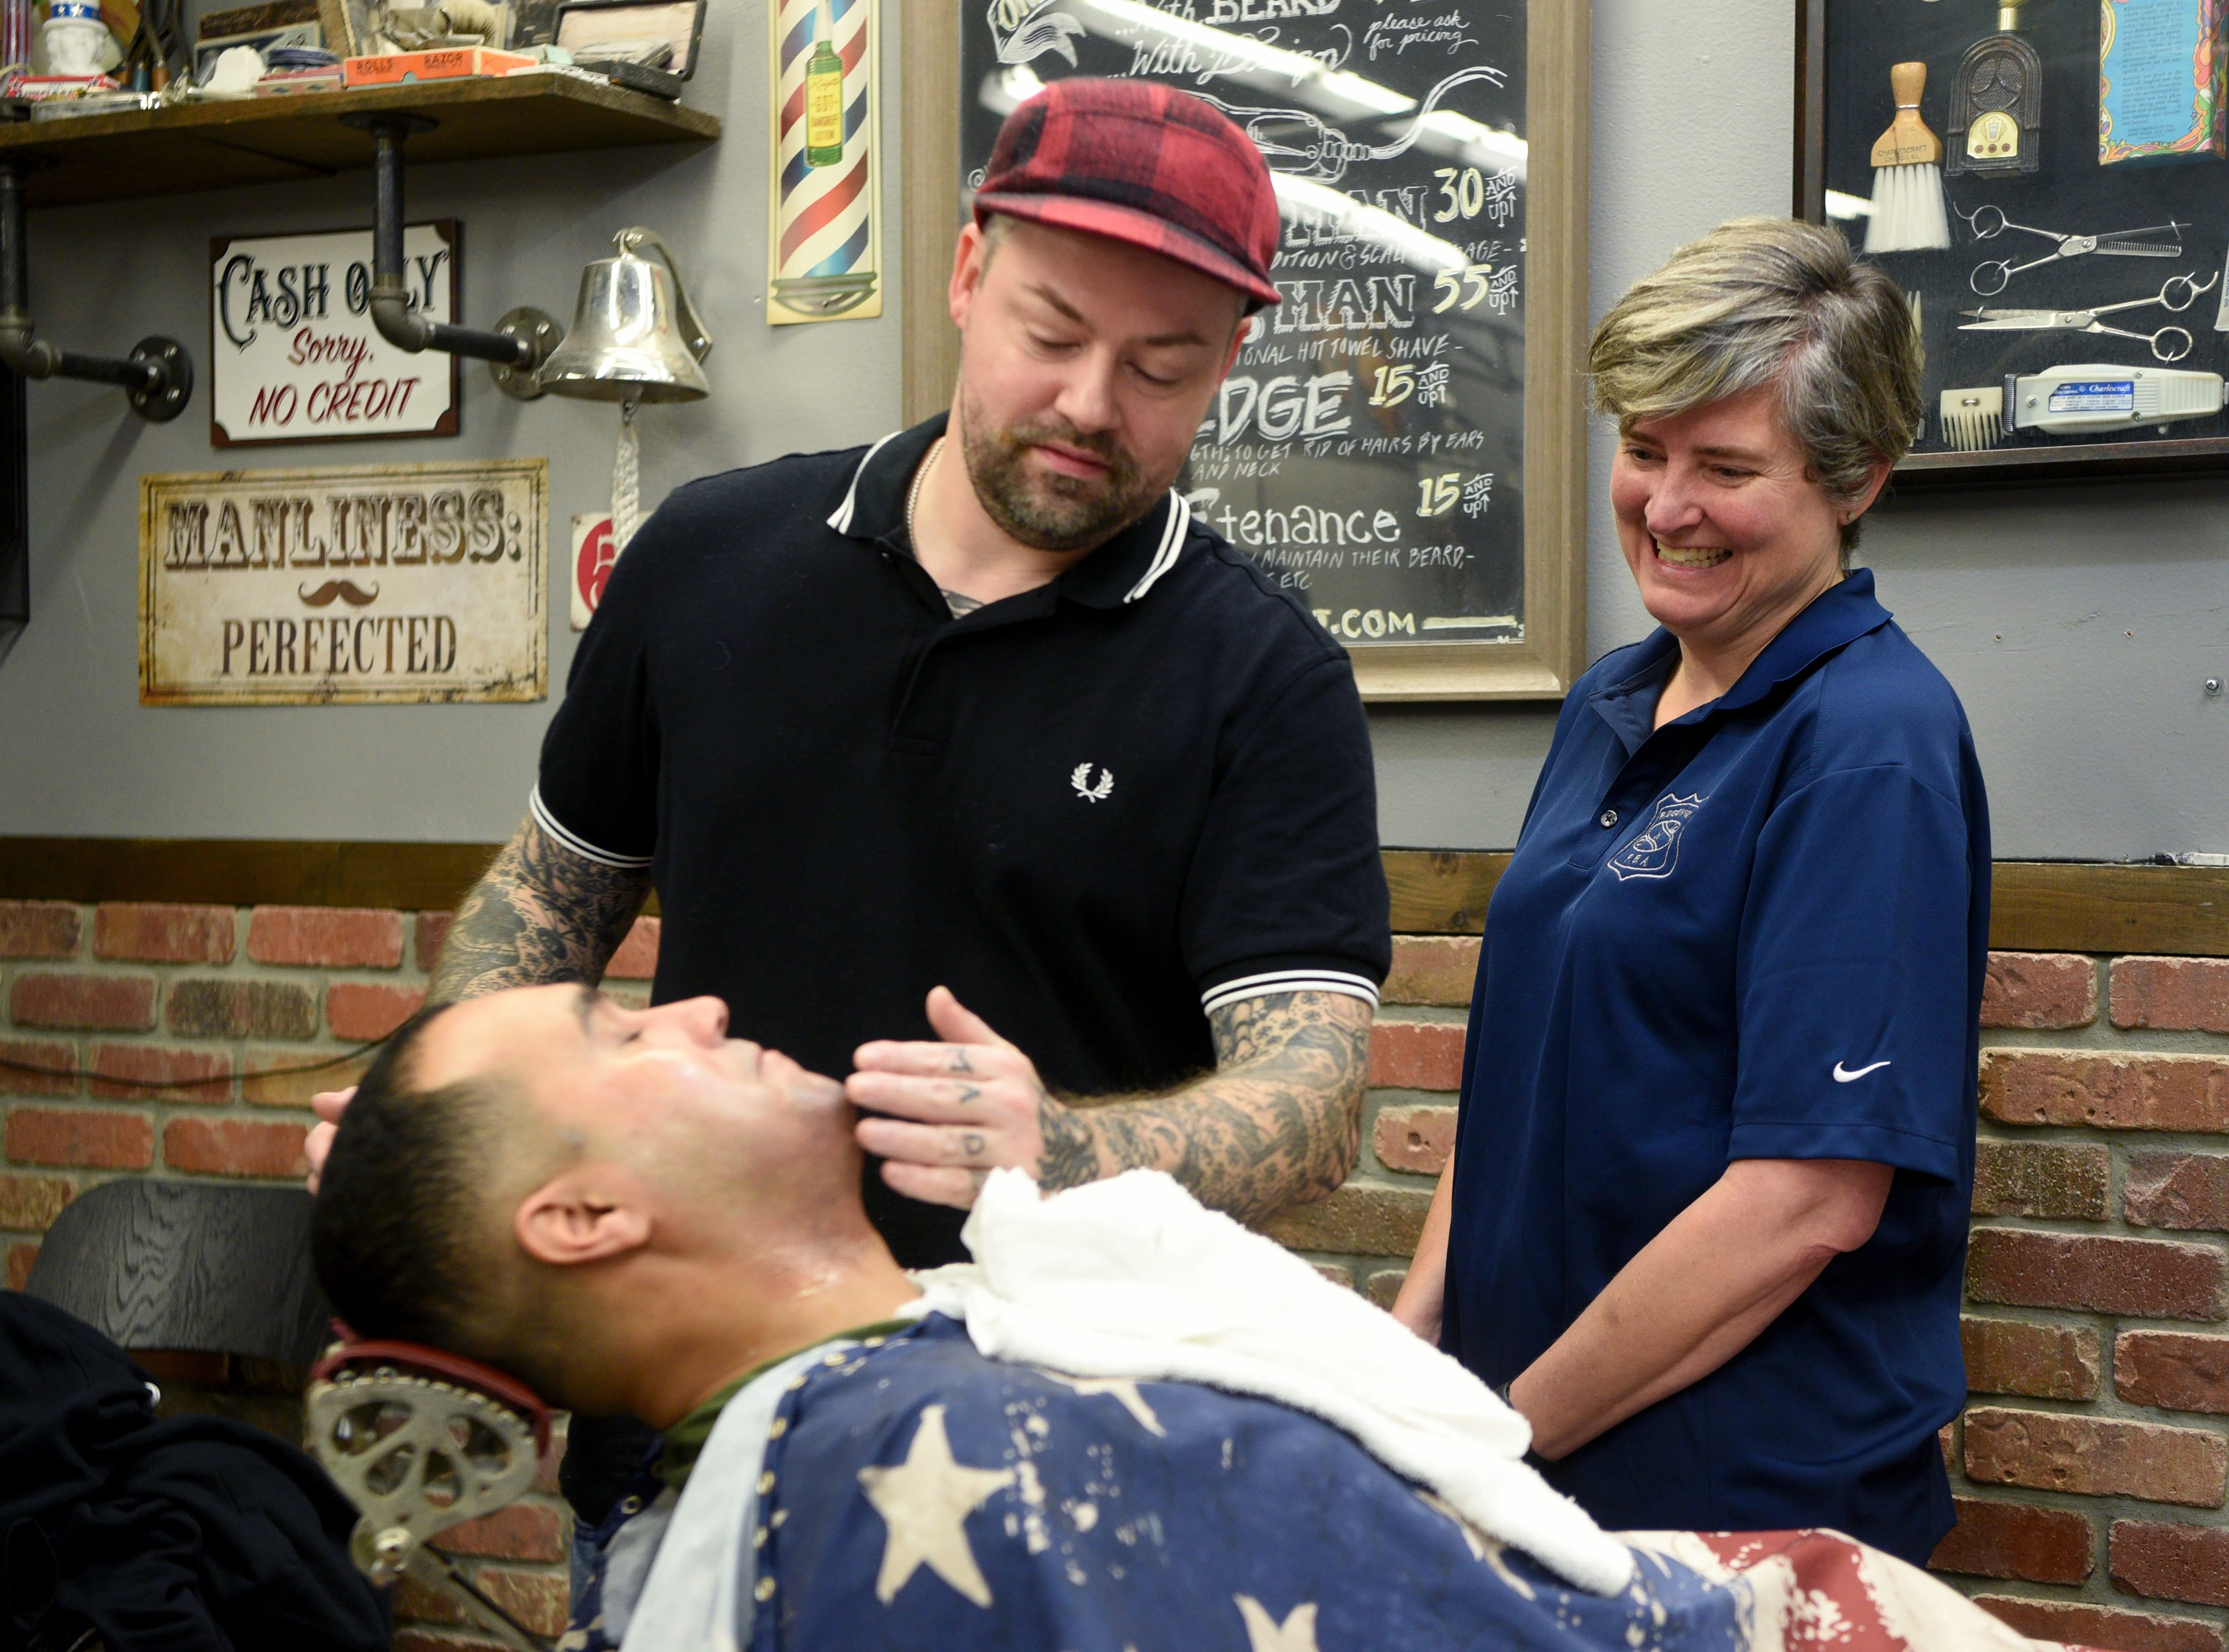 Ridgewood Police Chief Jacqueline Luthcke watches while Patrolman Hector Perez is shaved by Shea Flynn. The Ridgewood, Wyckoff and Franklin Lakes PBAs held their No-Shave November Annual Shave-Off at Iconic Barber Shop in Glen Rock on Sunday, December 2, 2018. The money raised will help a Ridgewood family pay medical bills. Iconic Barber Shop also donated 100% percent of the proceeds from Sunday morning's Shave-Off.